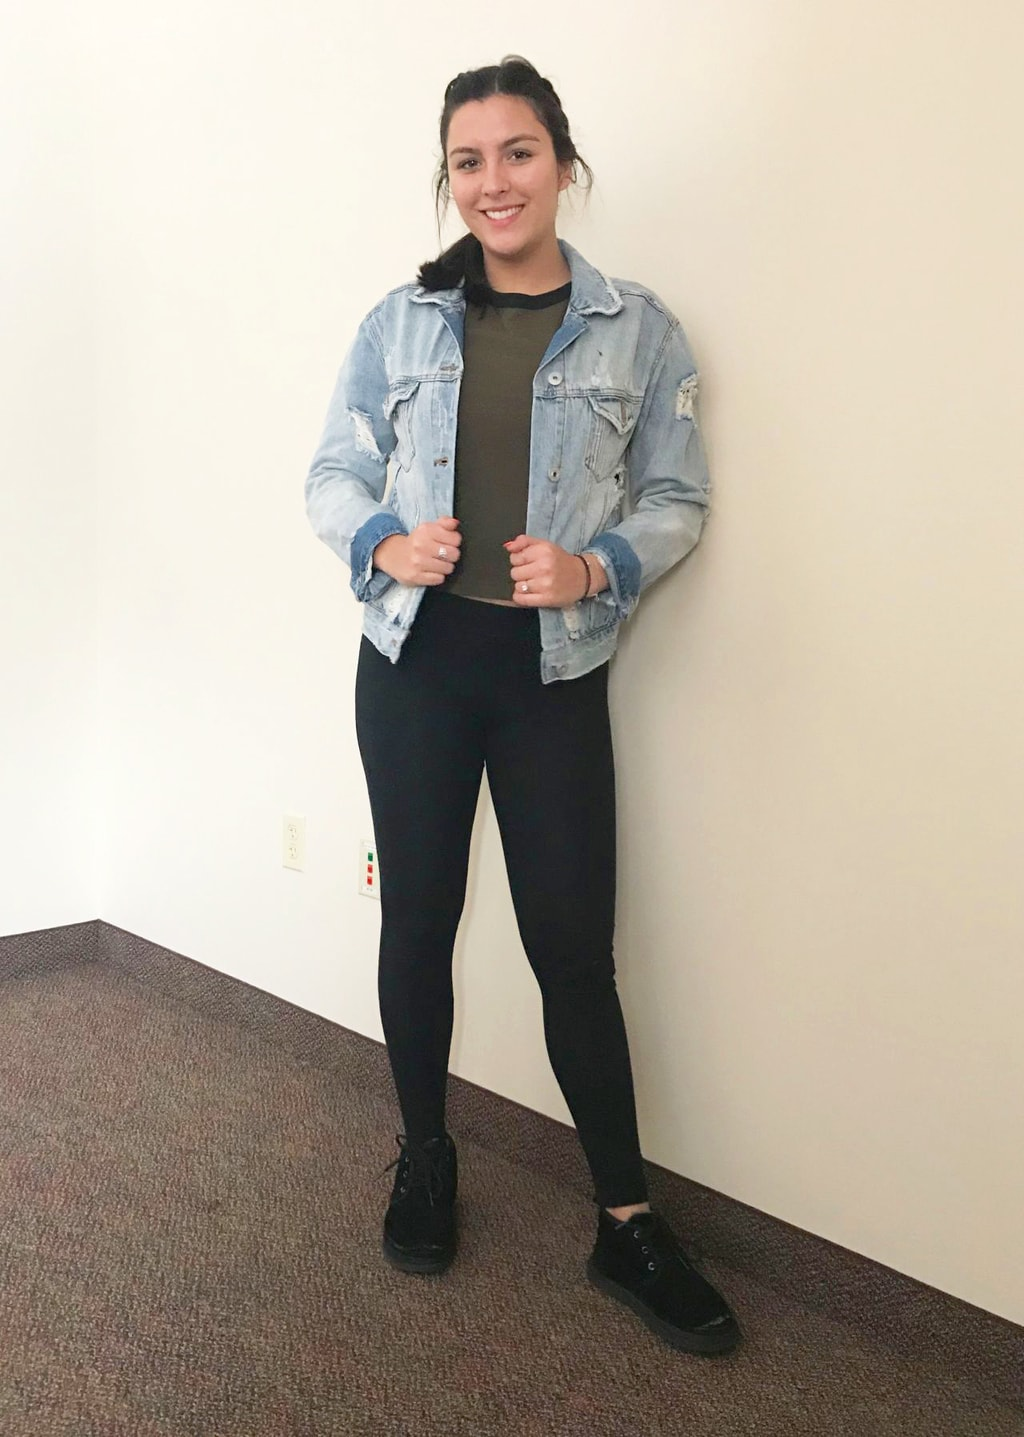 Mercyhurst fashion: Mercyhurst University student Arianna looks is comfortable in her olive green crop top with a black neckline, light-wash distressed denim jacket with the cuffs rolled up, black leggings, and black casual lace-up sneakers.